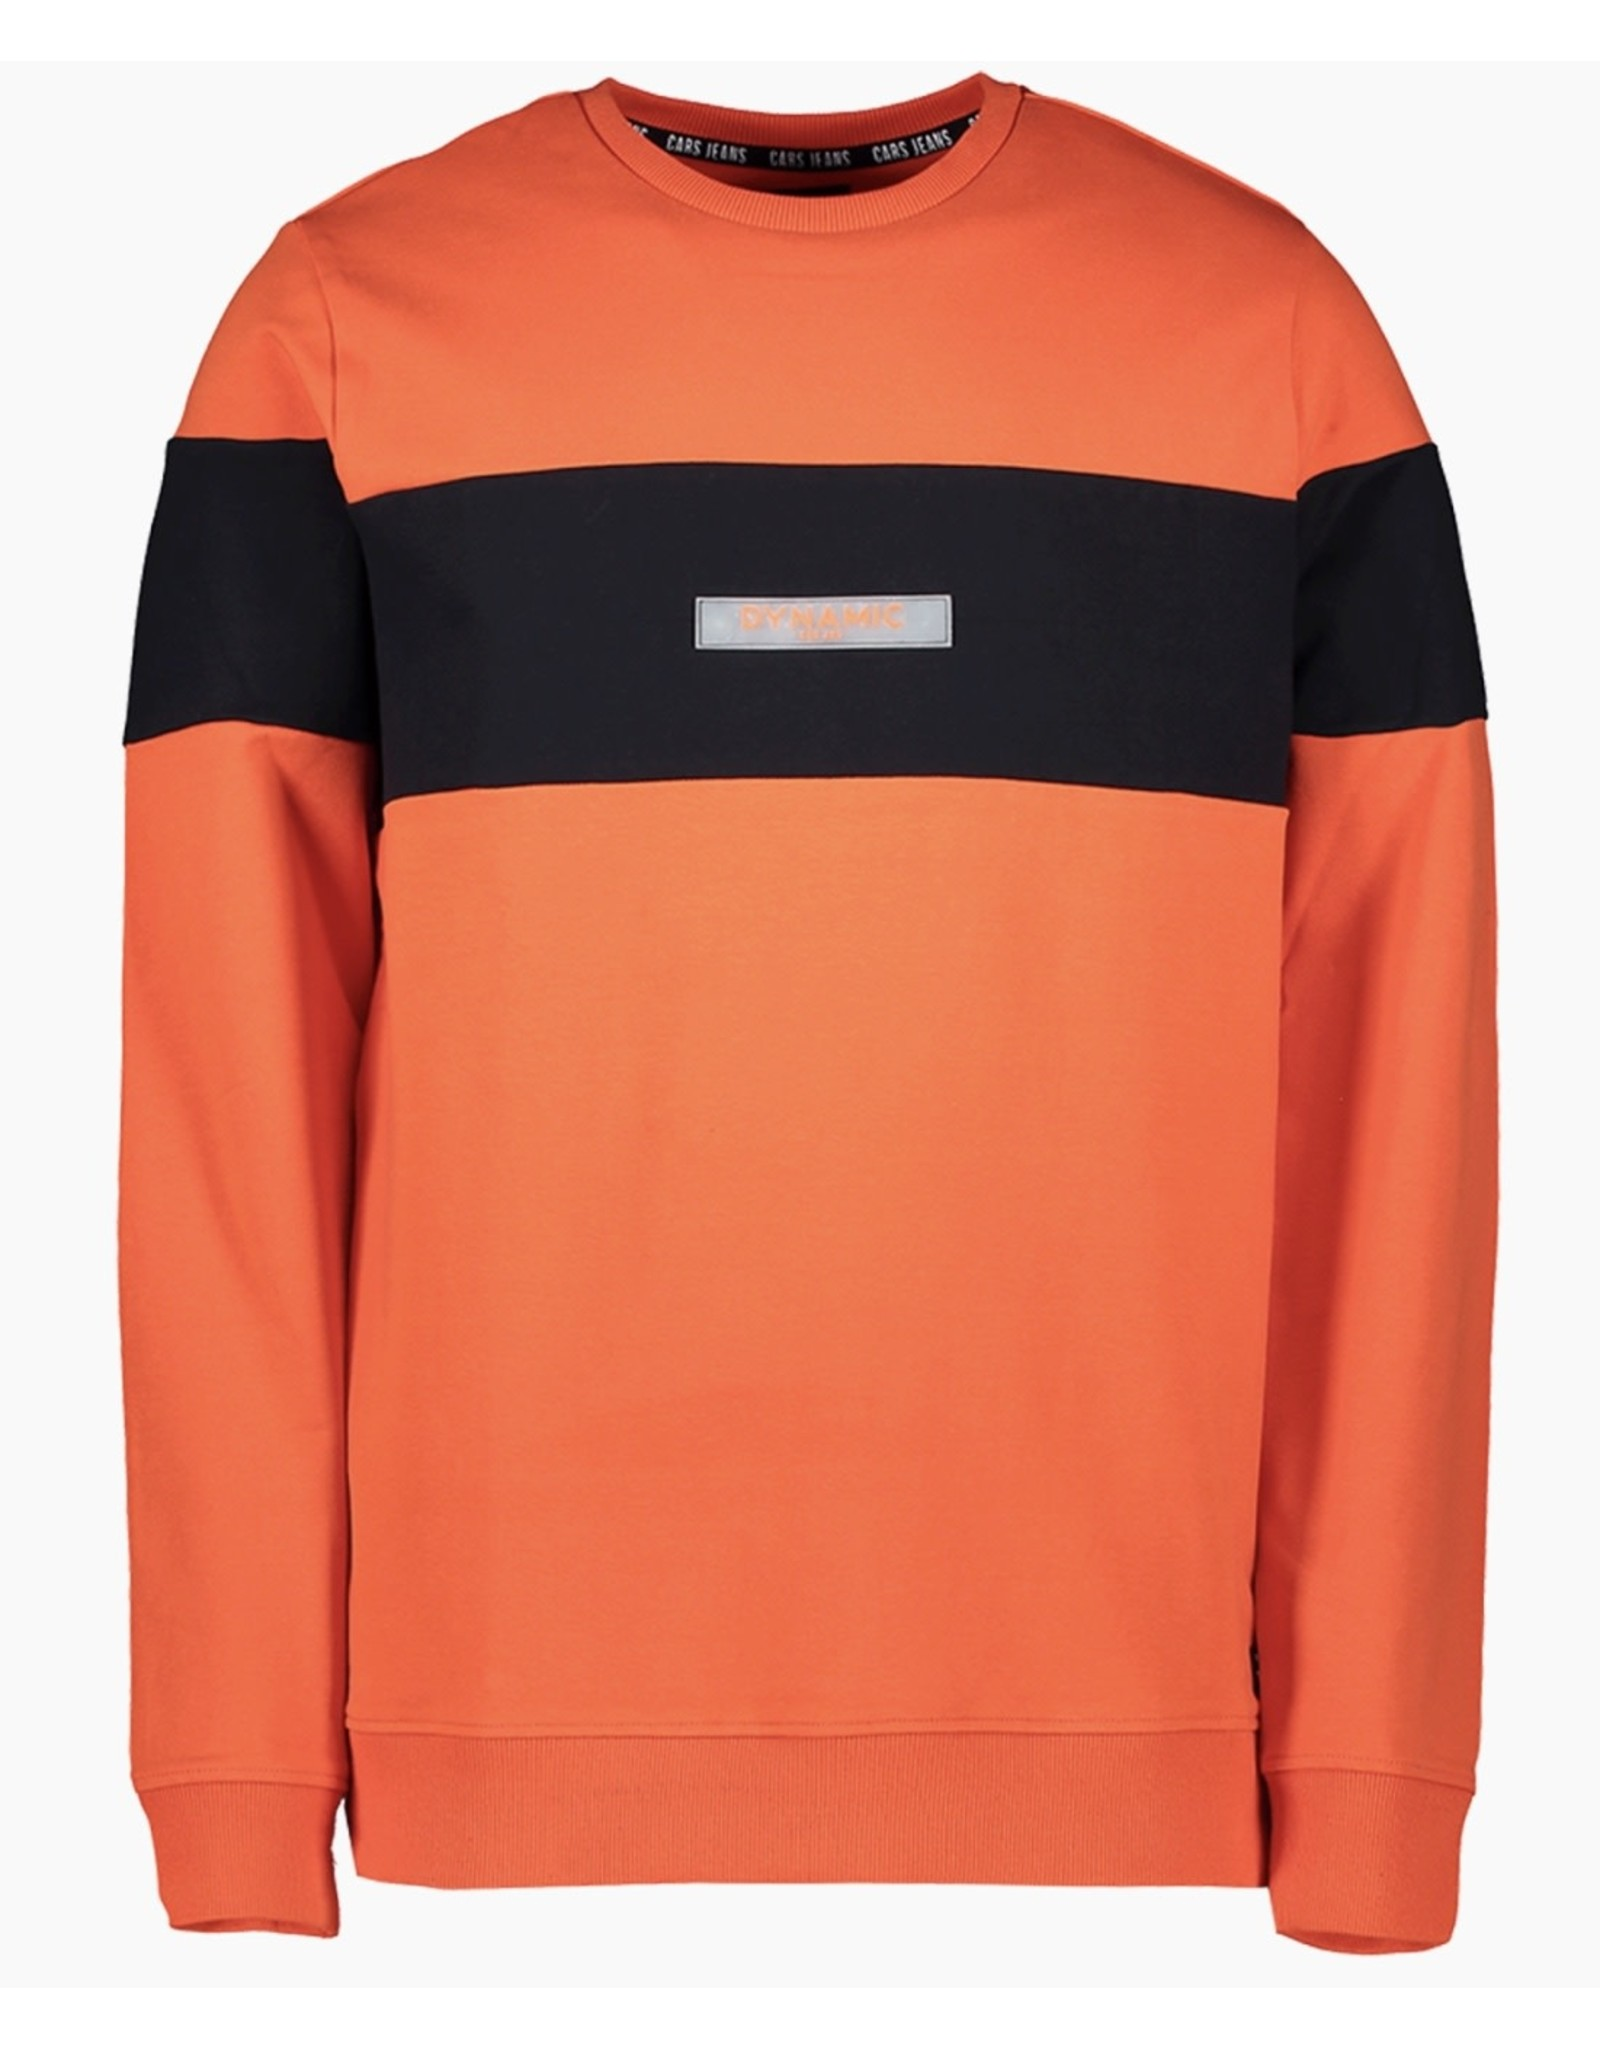 Cars sling sweater